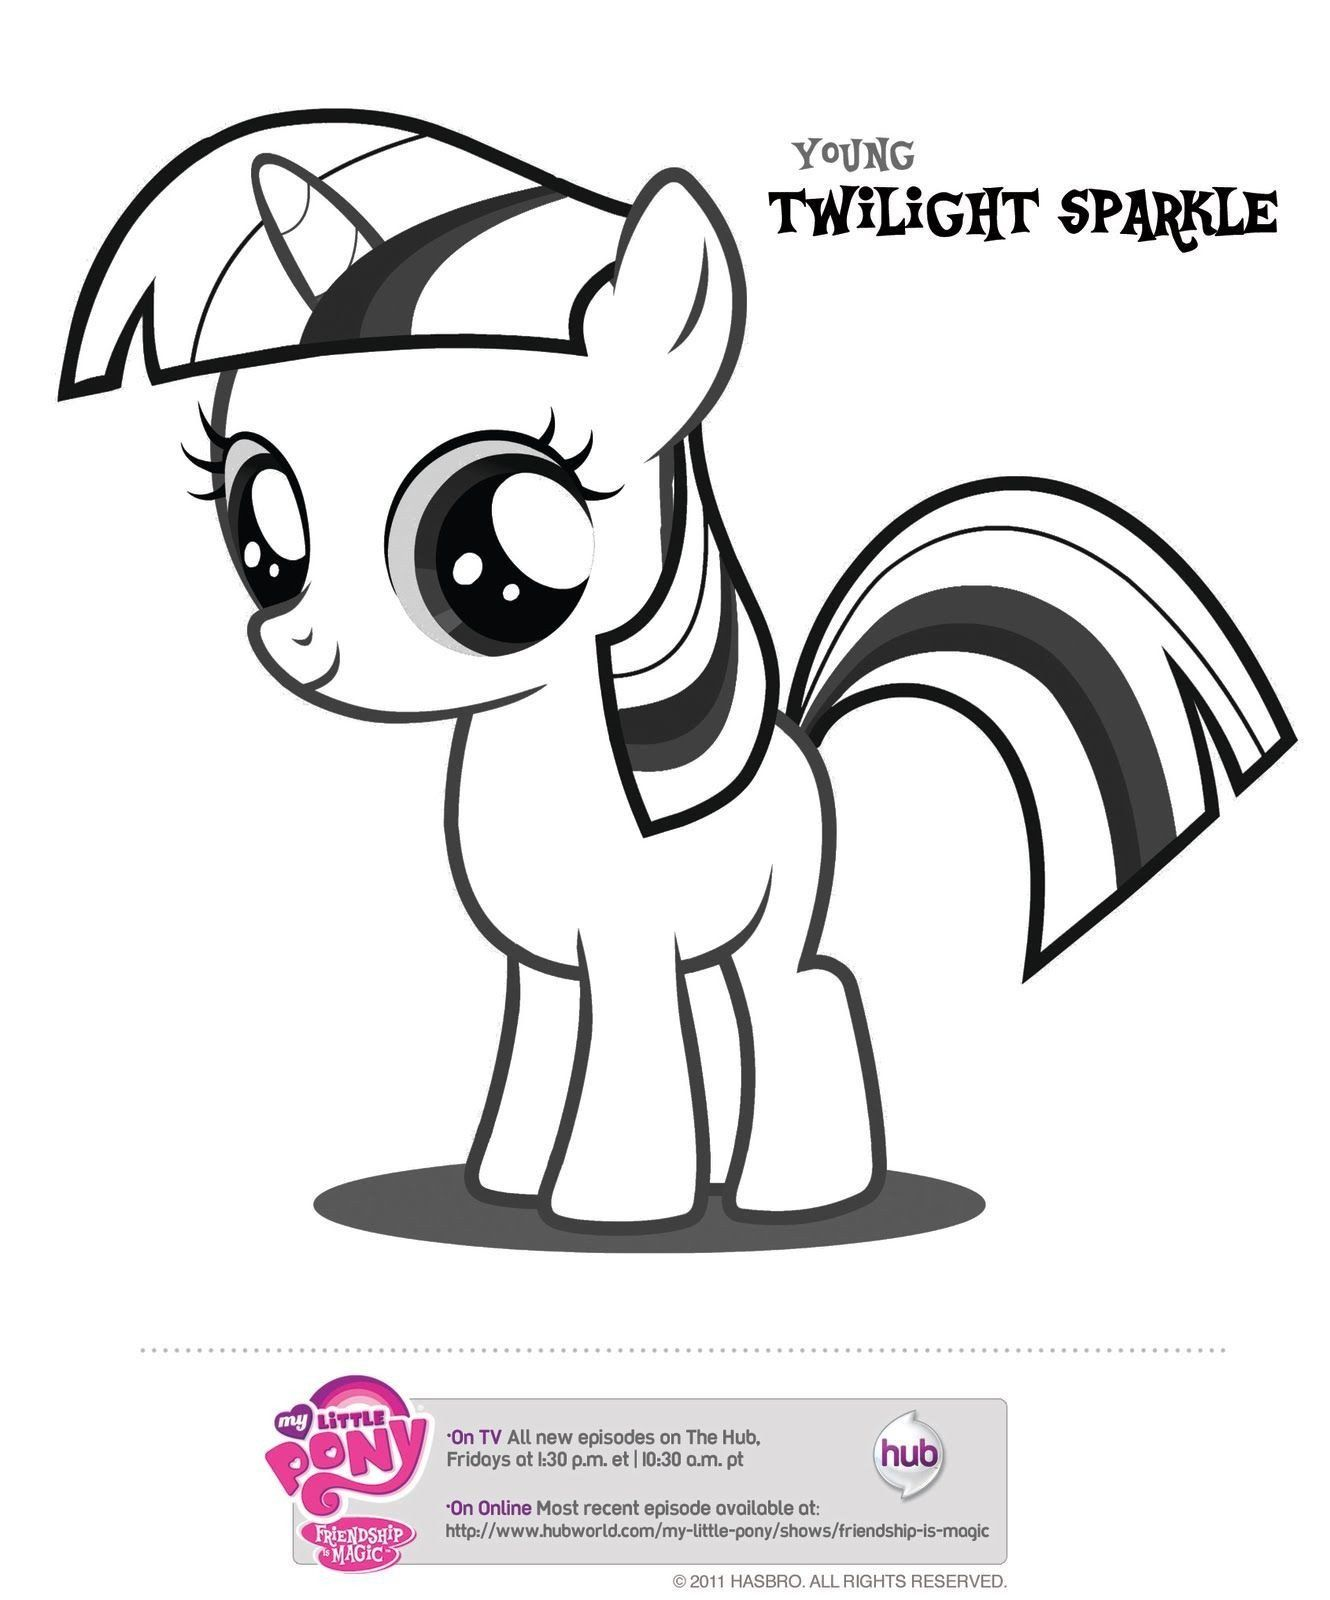 My Little Pony Coloring Pages Free Printables My Little Pony Friendship Is Magic Coloring My Little Pony Coloring My Little Pony Unicorn Unicorn Coloring Pages